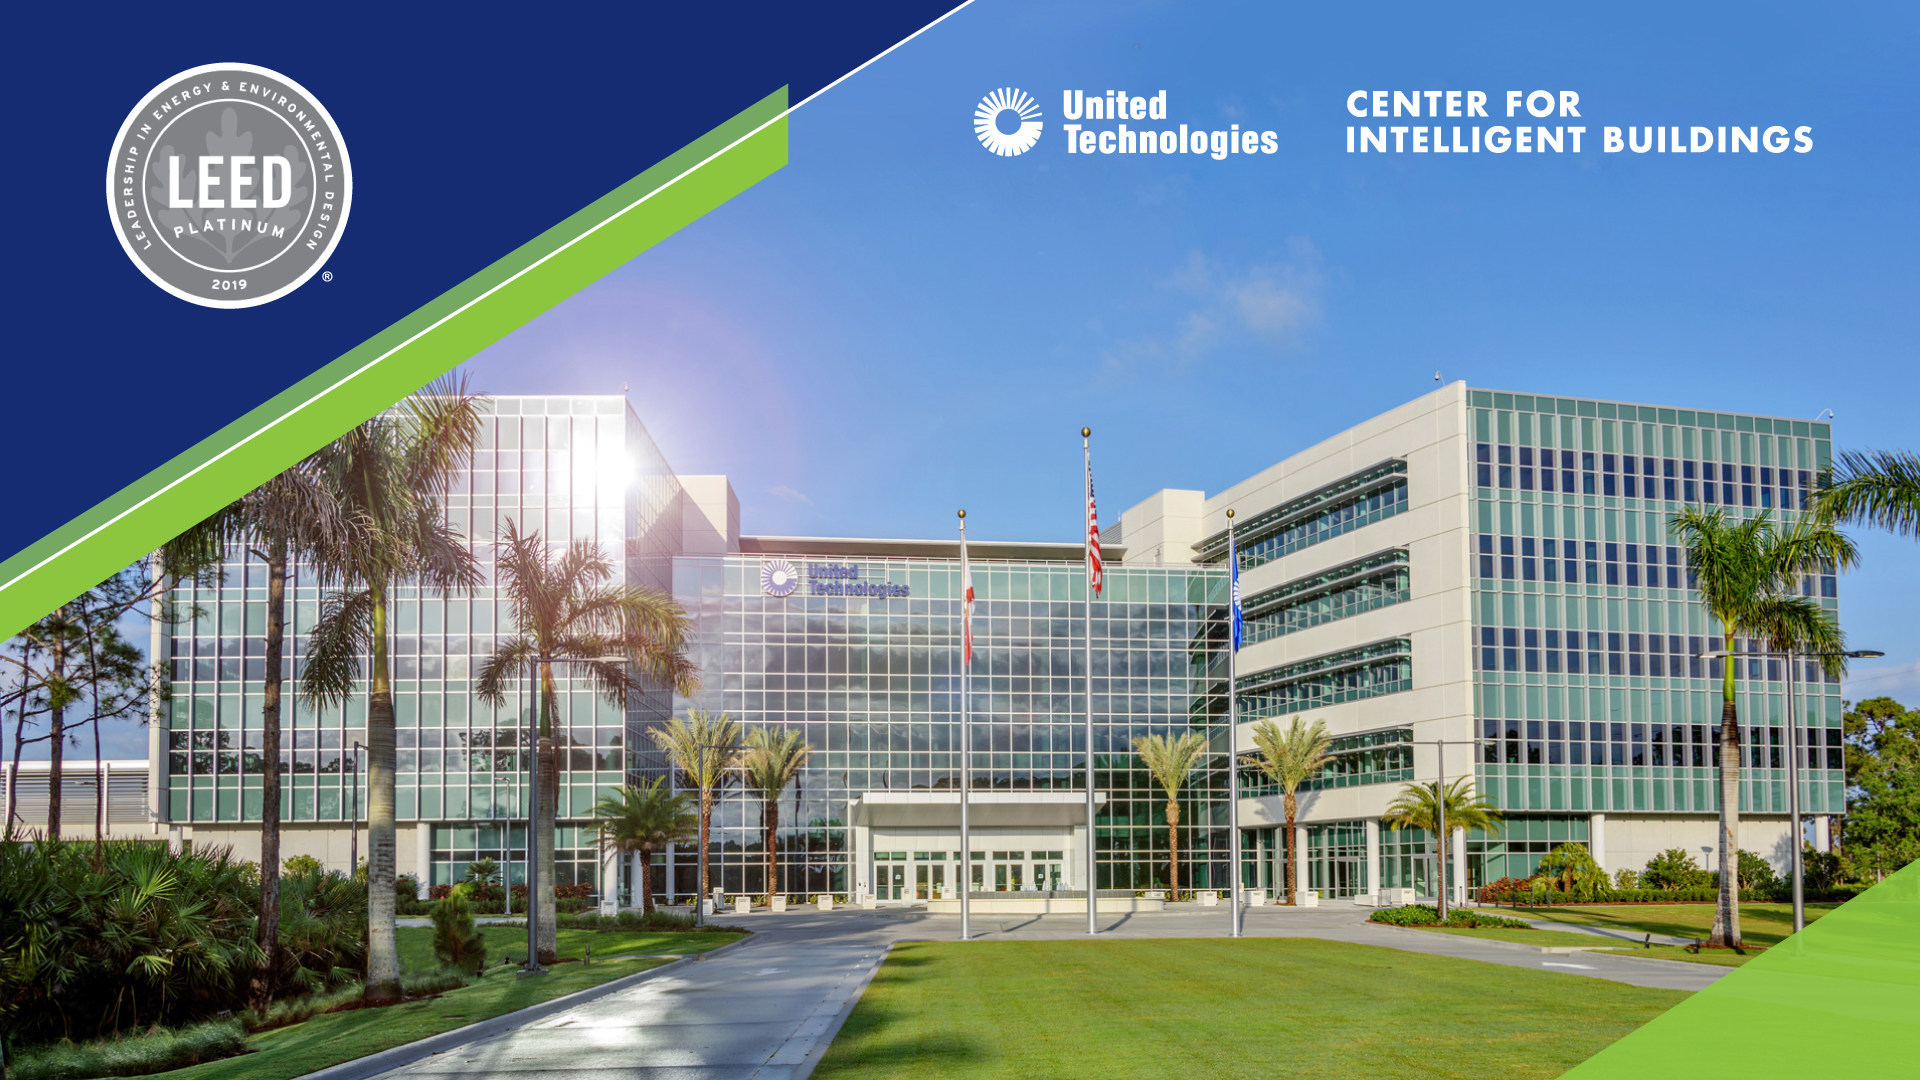 Carrier S World Headquarters Is First Commercial Building In Florida To Achieve Leed Platinum V4 Certification